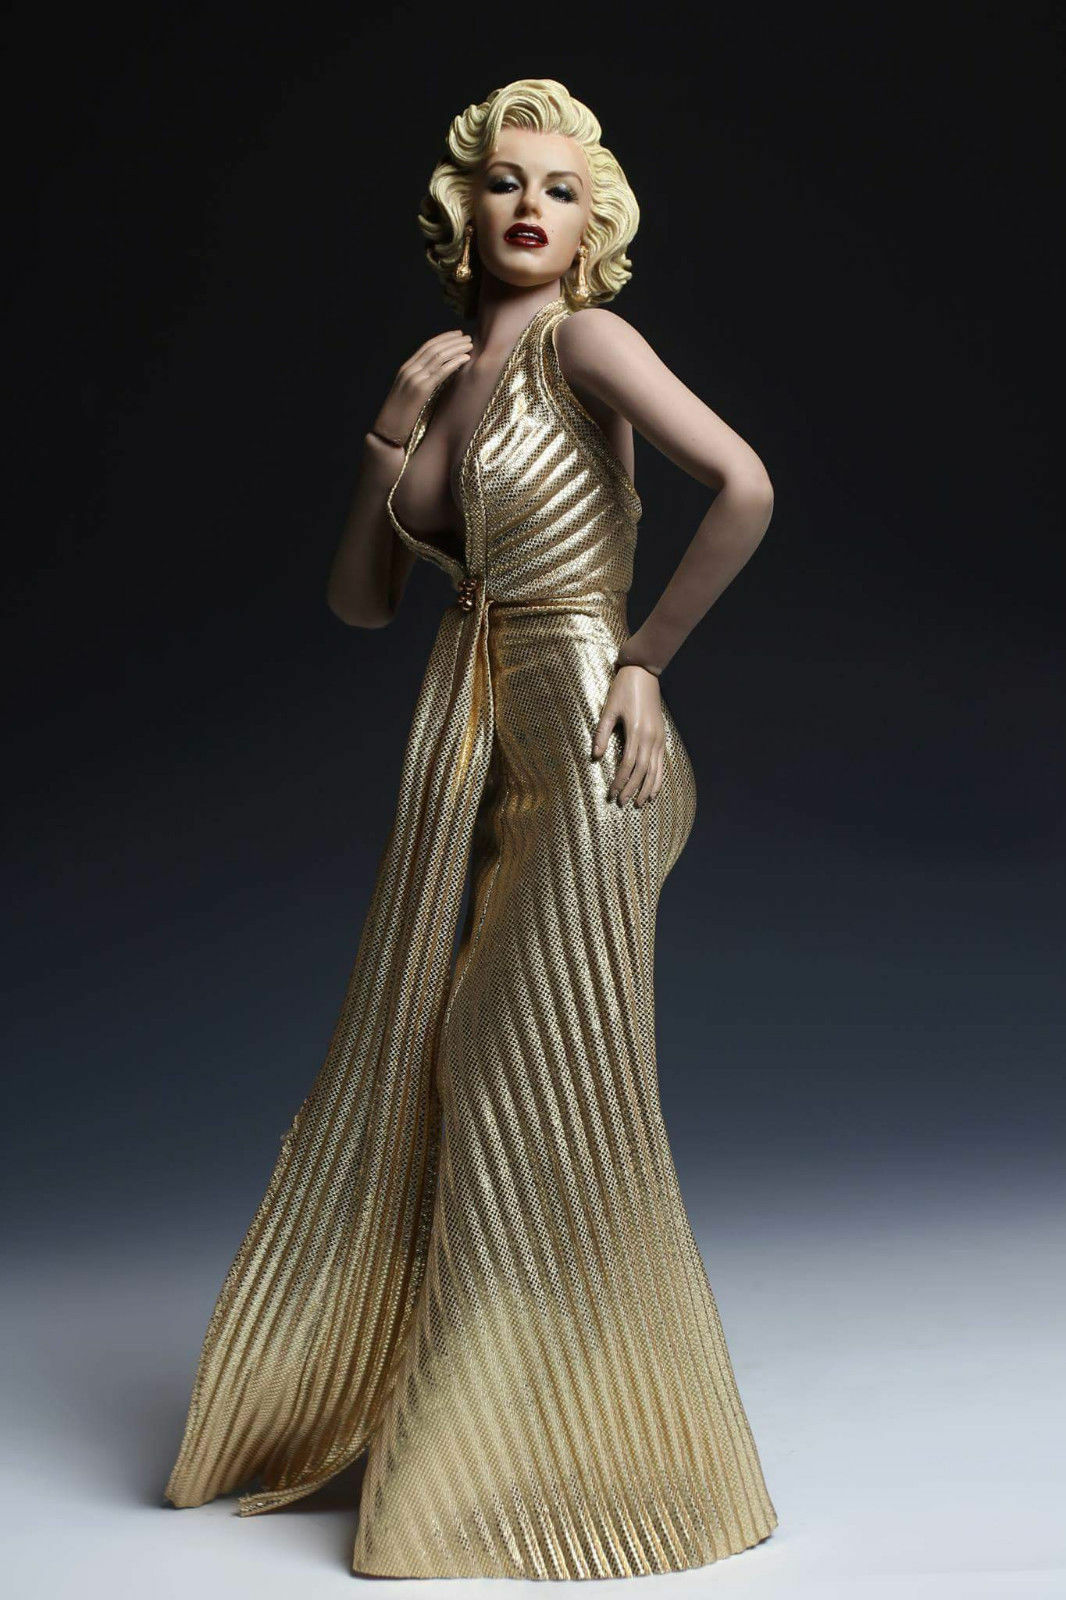 DIY 1/6 Woman Figure oro Dress and Head PH Doll Marilyn Monroe Collection Toy